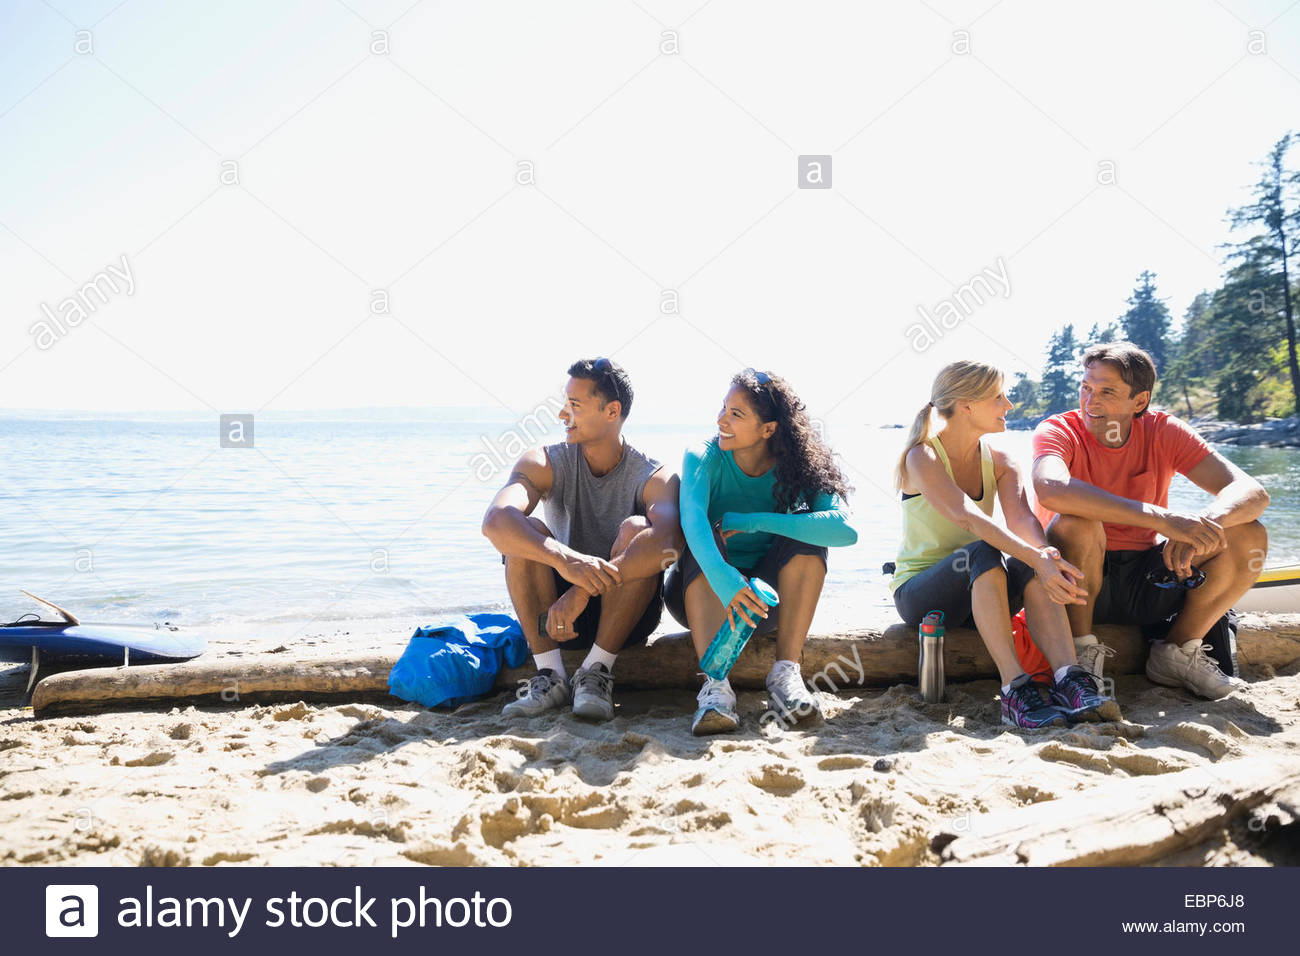 Runners sitting on sunny beach - Stock Image